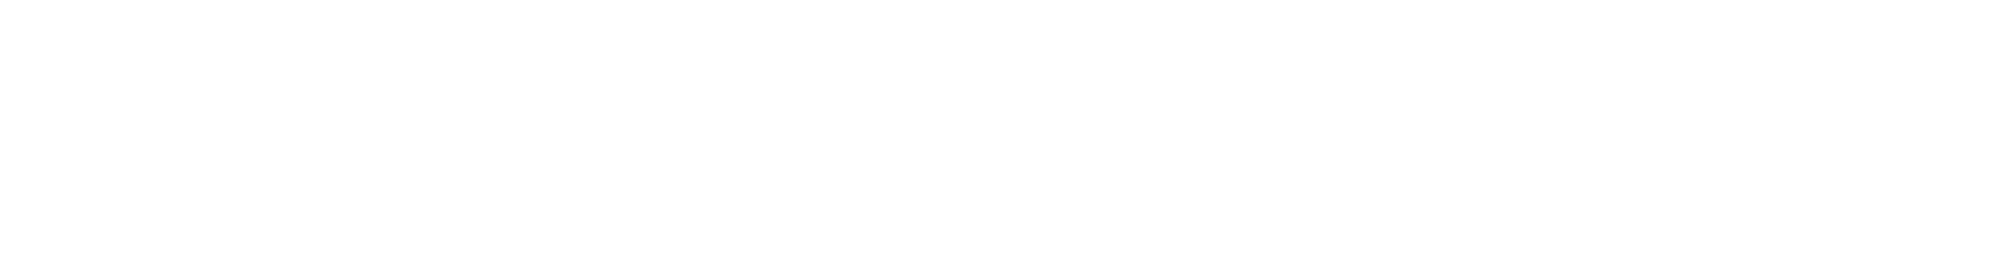 Benchmark_R_1CWhite (1).png